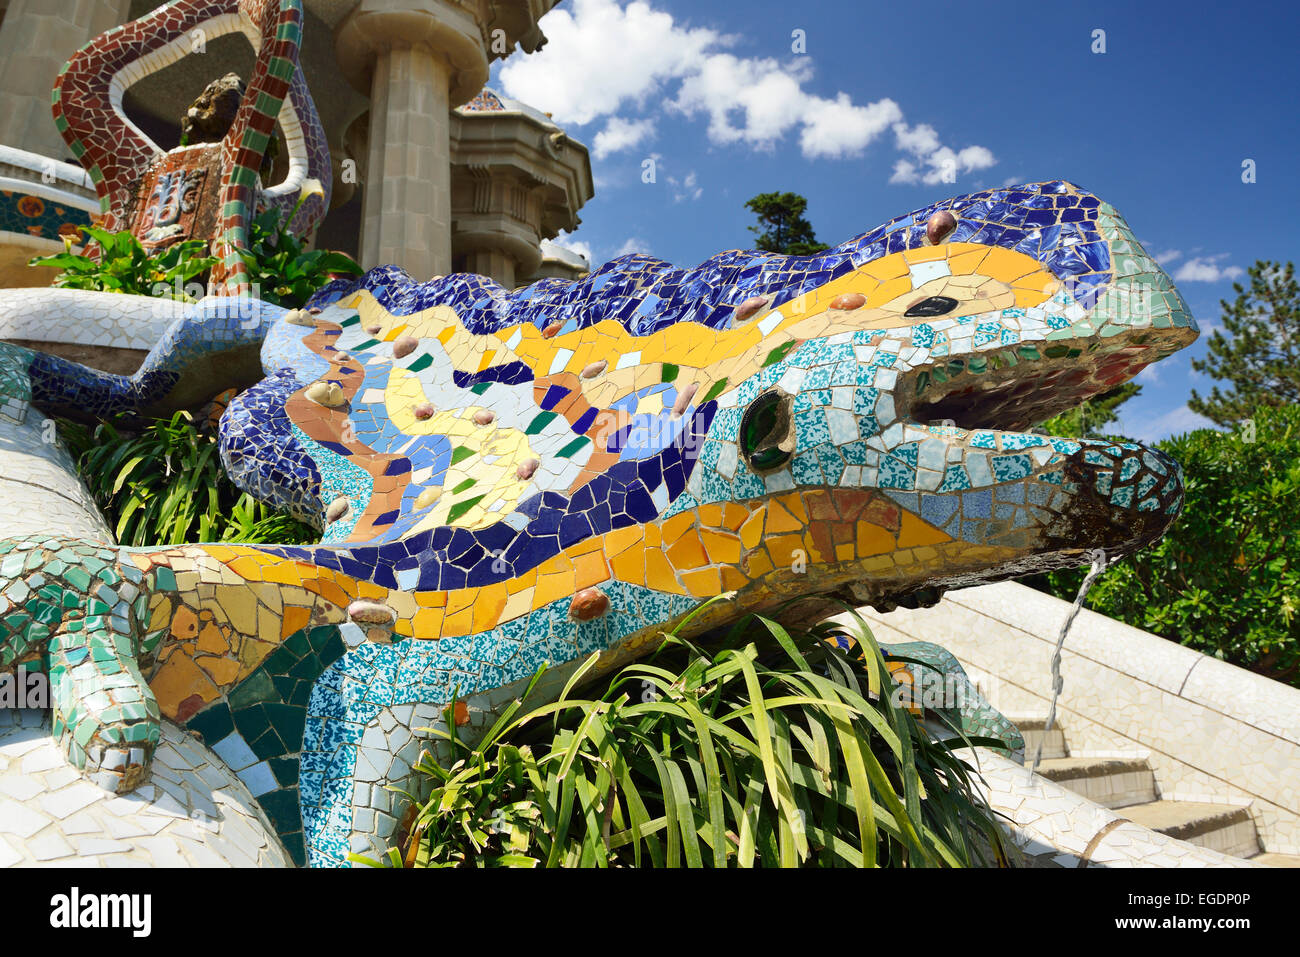 Mosaic Salamander Known As The Dragon Park Guell Architect